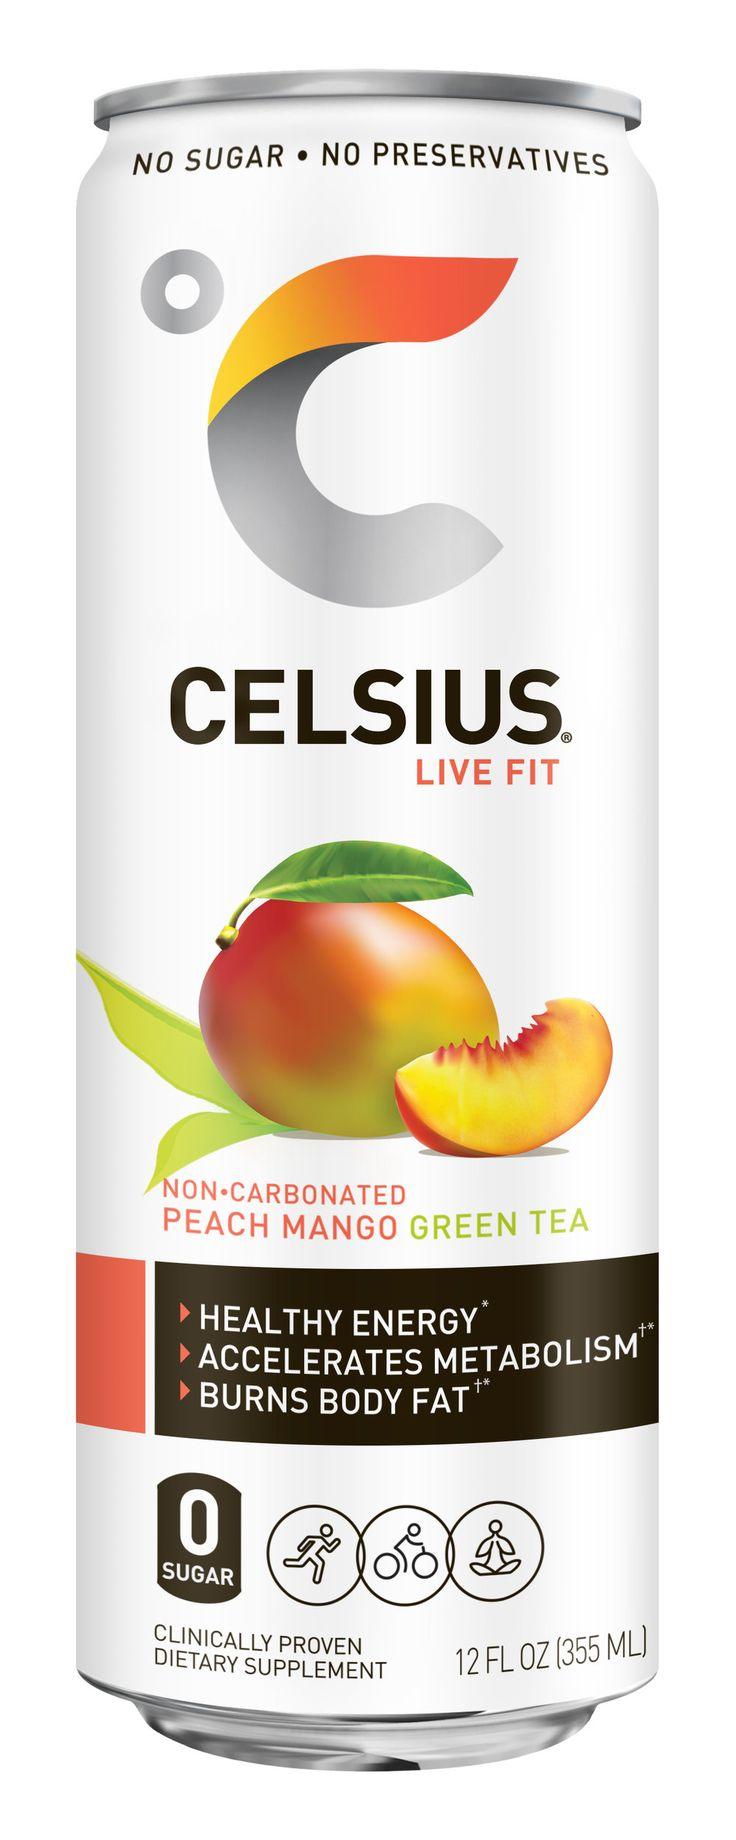 Celsius Healthy Energy Beverage (With images) Energy